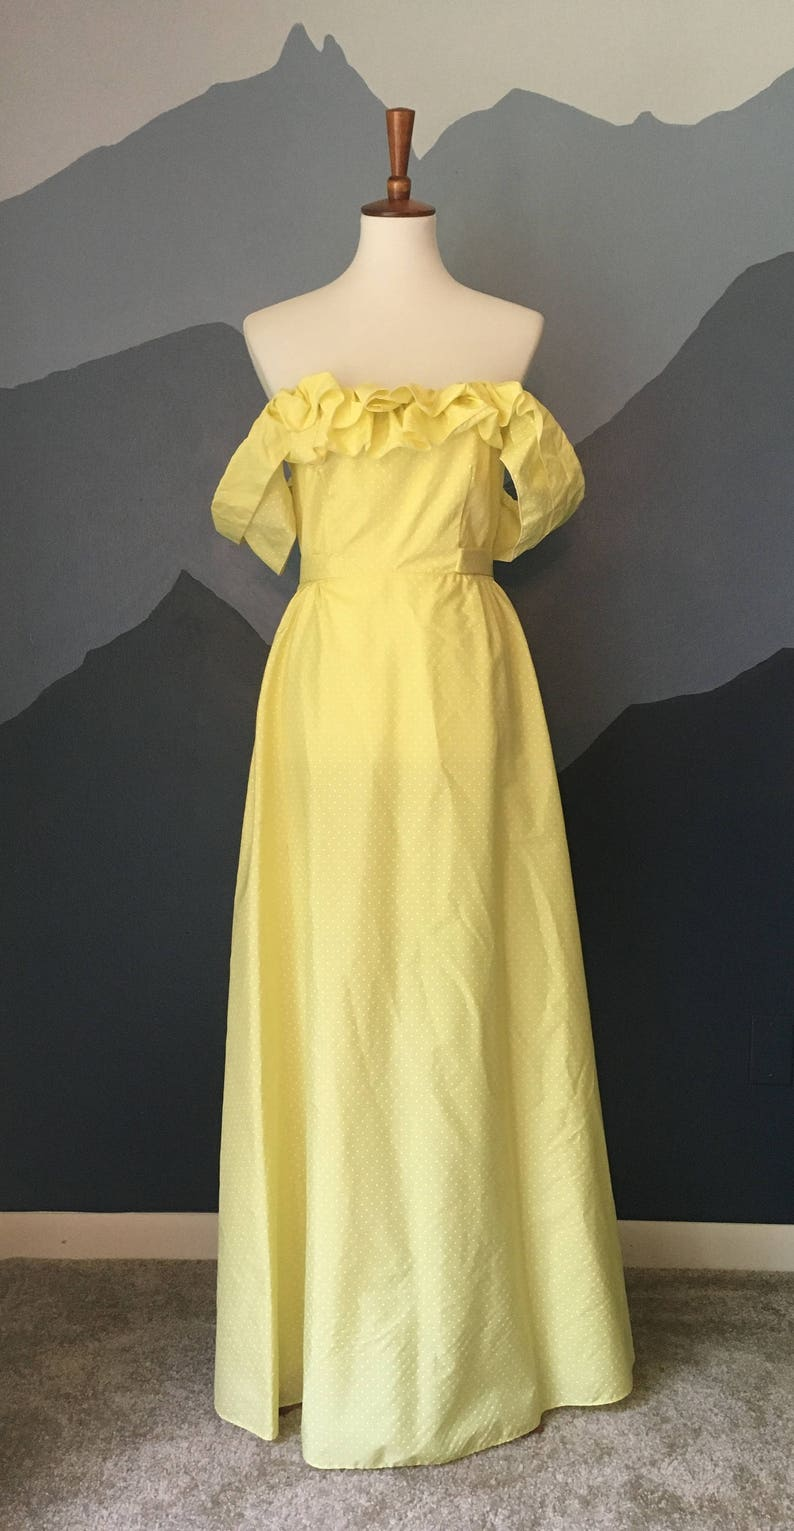 83caa3667d 1940s Vintage Prom Dresses - Gomes Weine AG